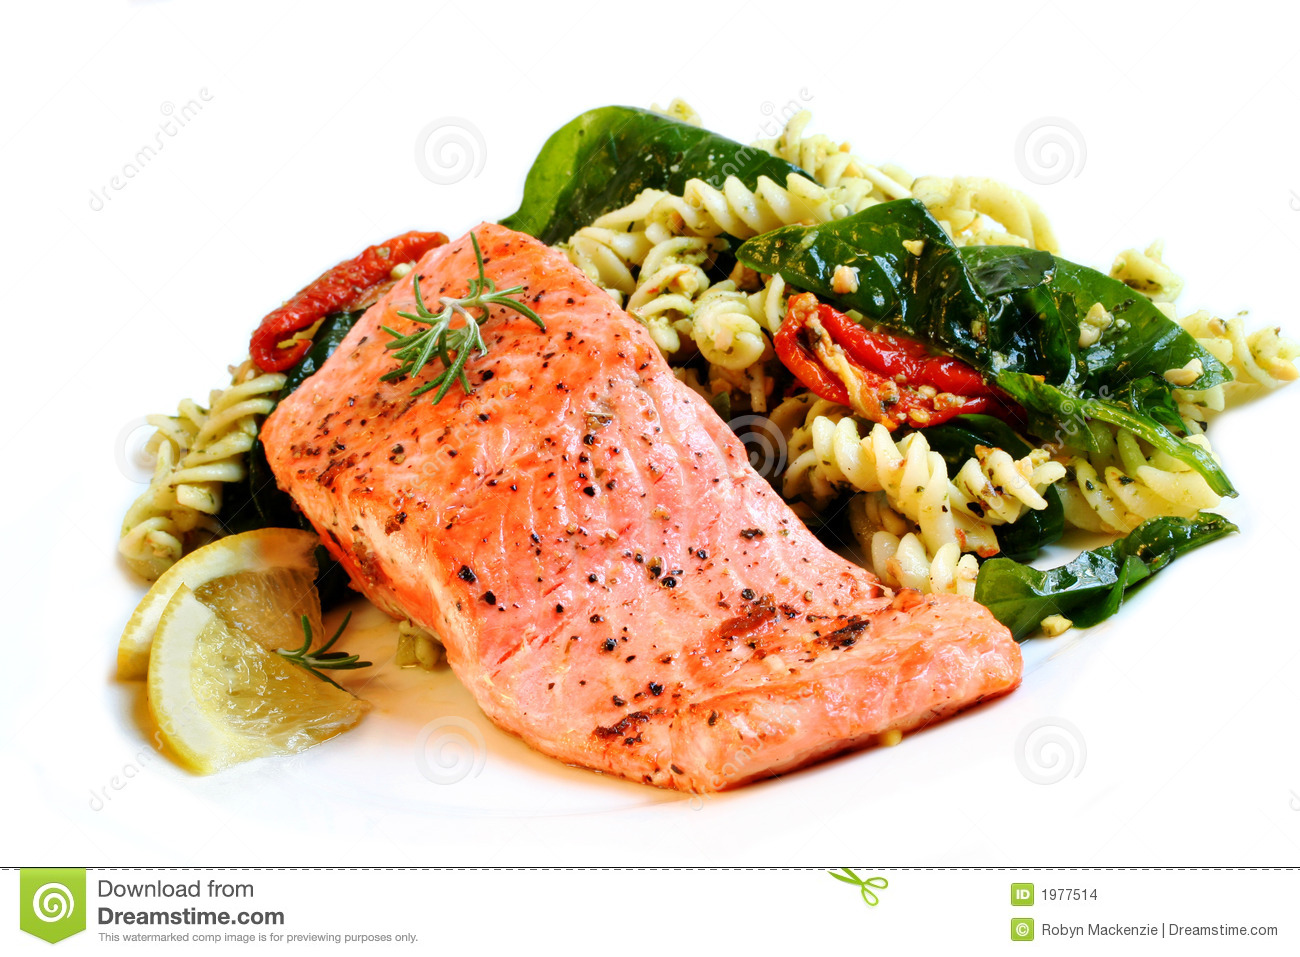 ... fillet of Atlantic salmon, perfectly cooked, with a fresh pasta salad